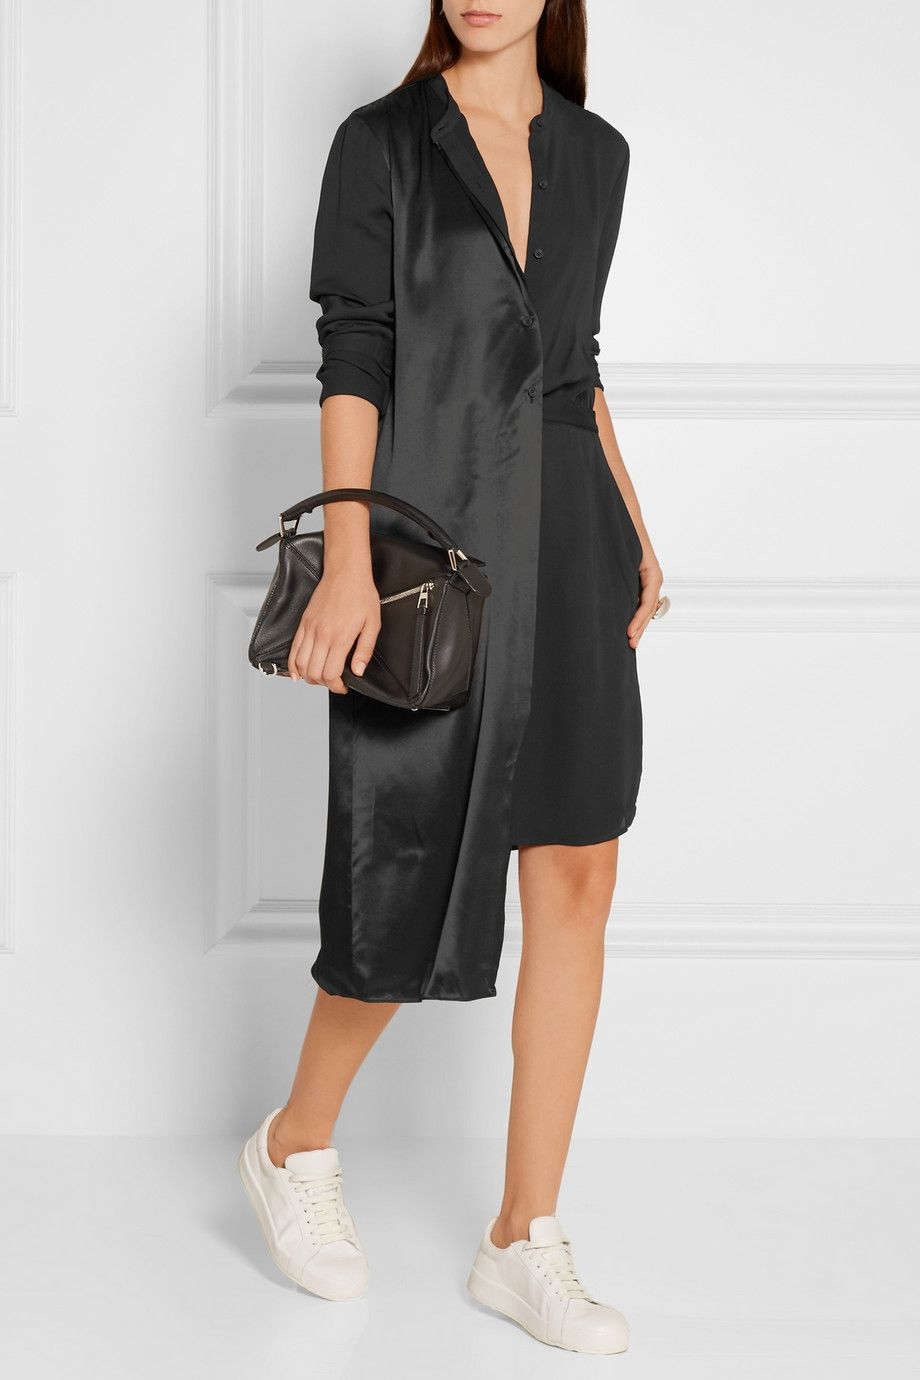 Prices Dkny Woman Pleated Wool-blend Dress Gray Size 0 DKNY Cheap Sale In China Comfortable Sale Online M9r87Fe